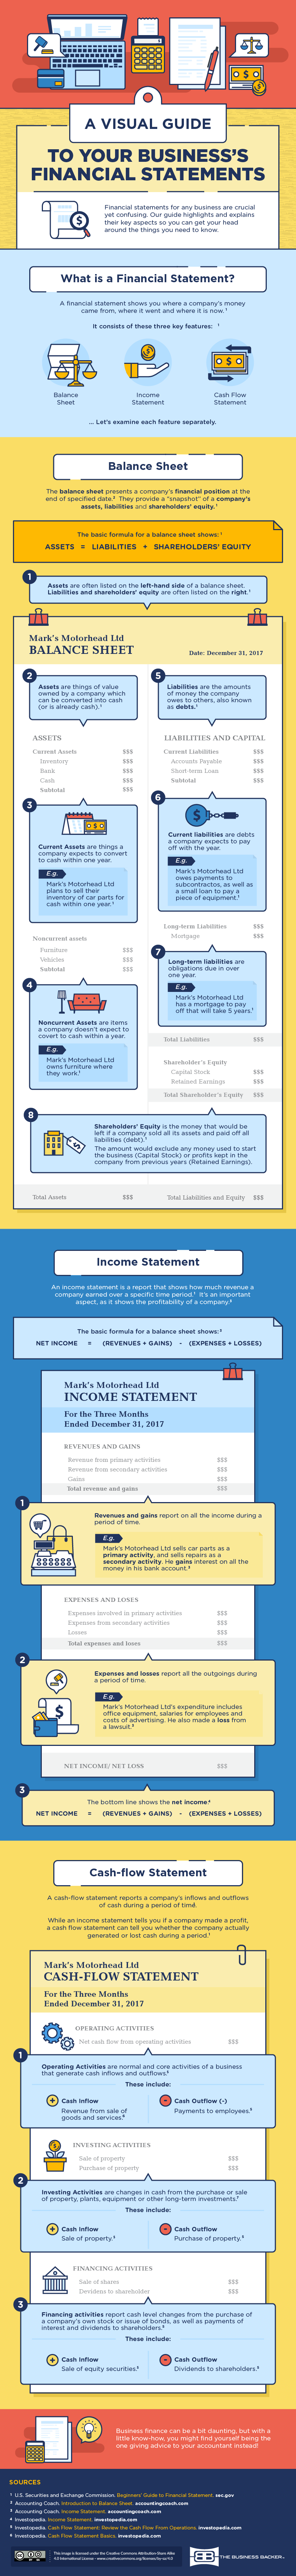 Infographic that helps small business owners understand their financial statements: balance sheet, P&L, and cash flow statement